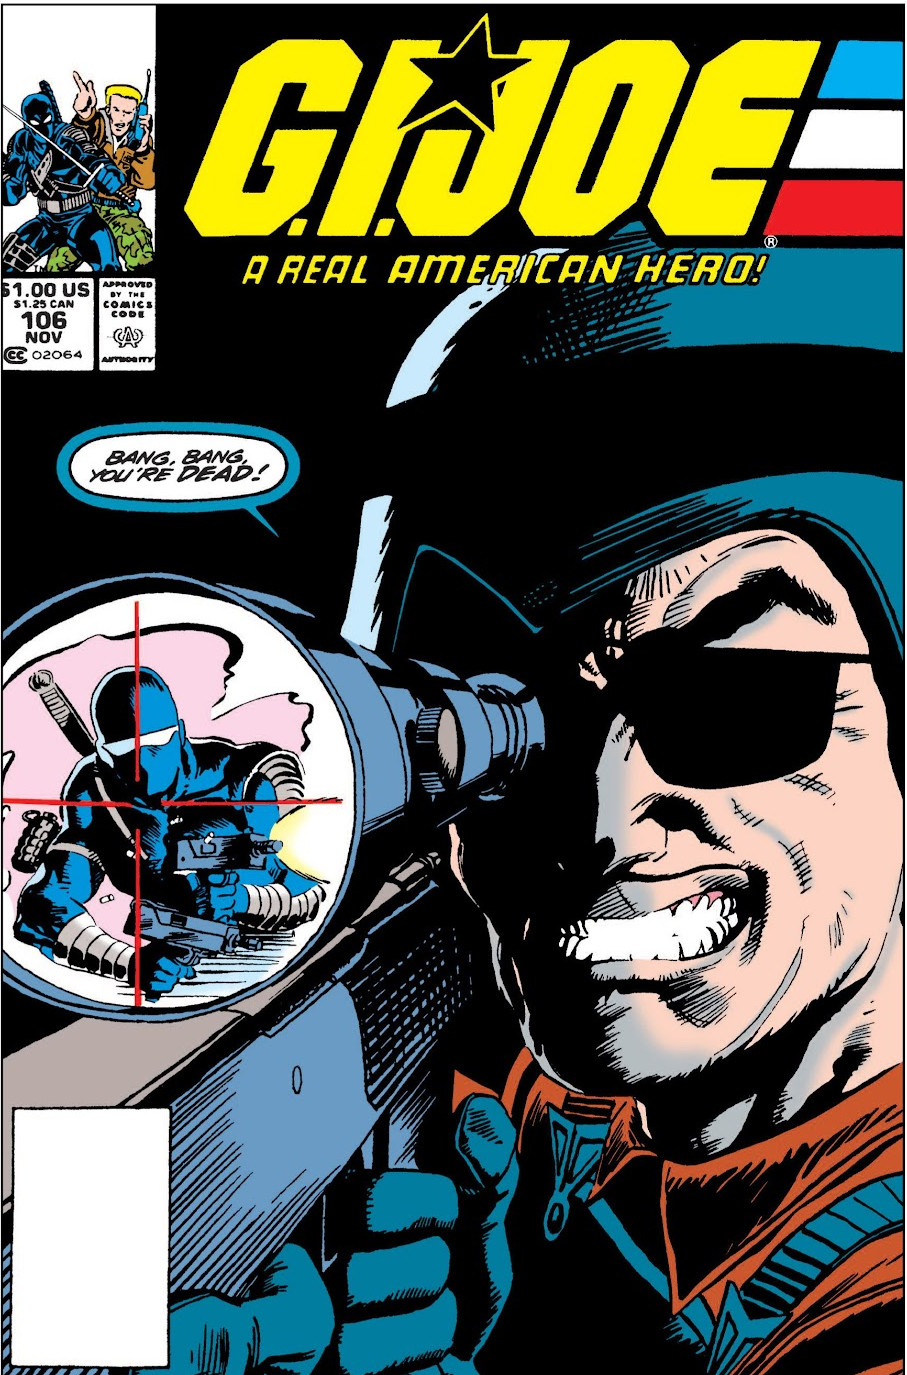 G.I. Joe: A Real American Hero Vol 1 106